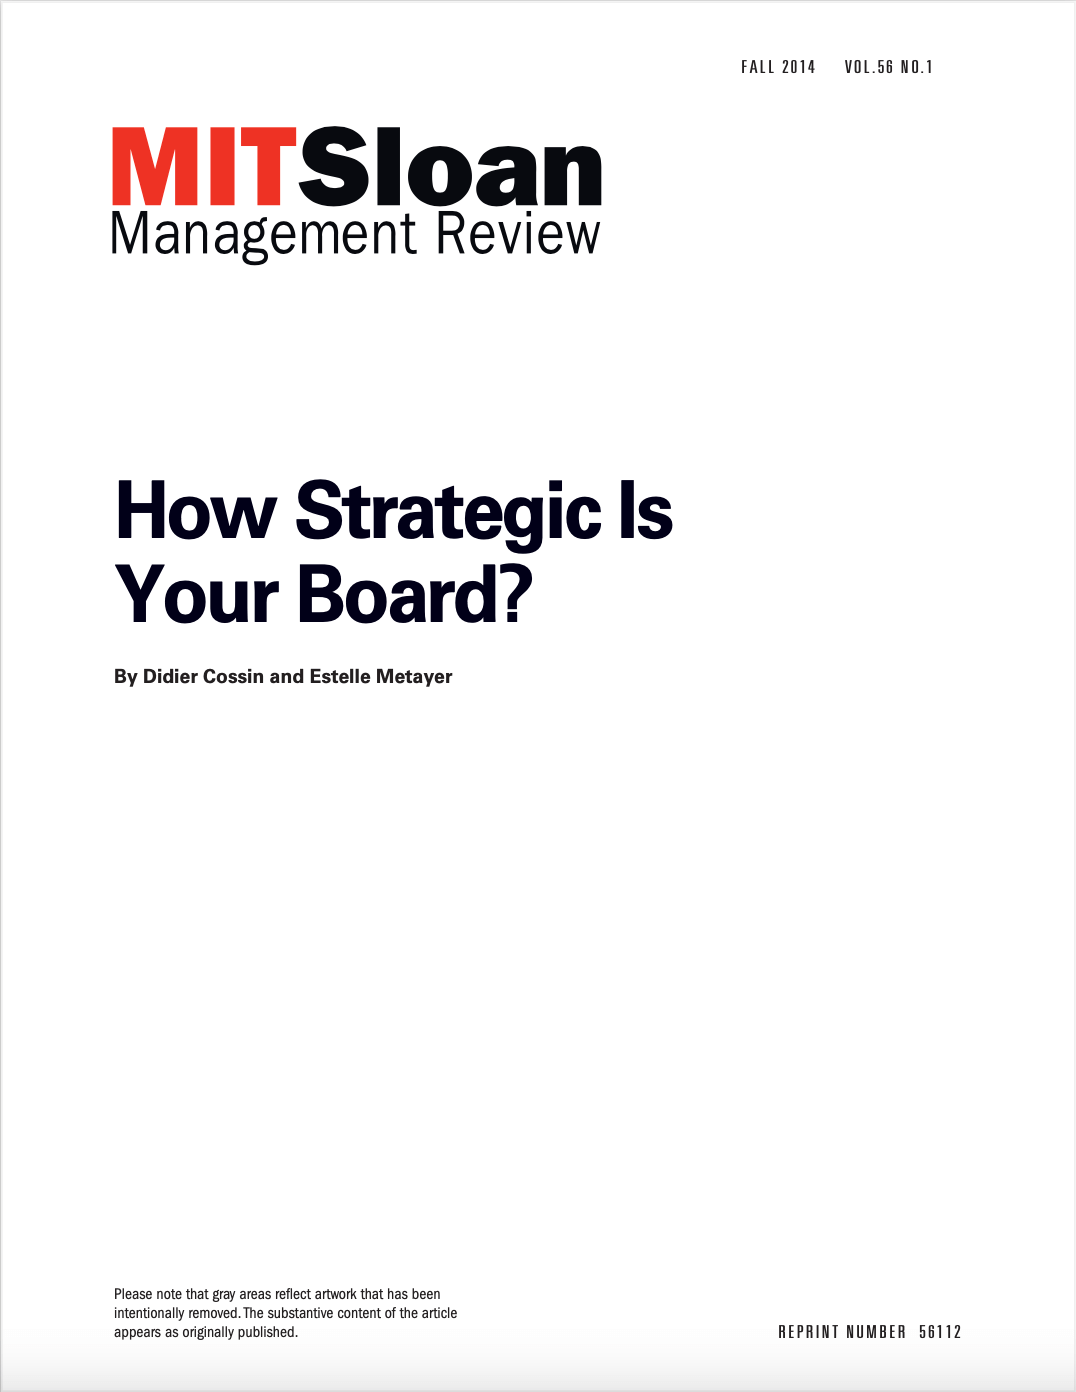 How Strategic is your board